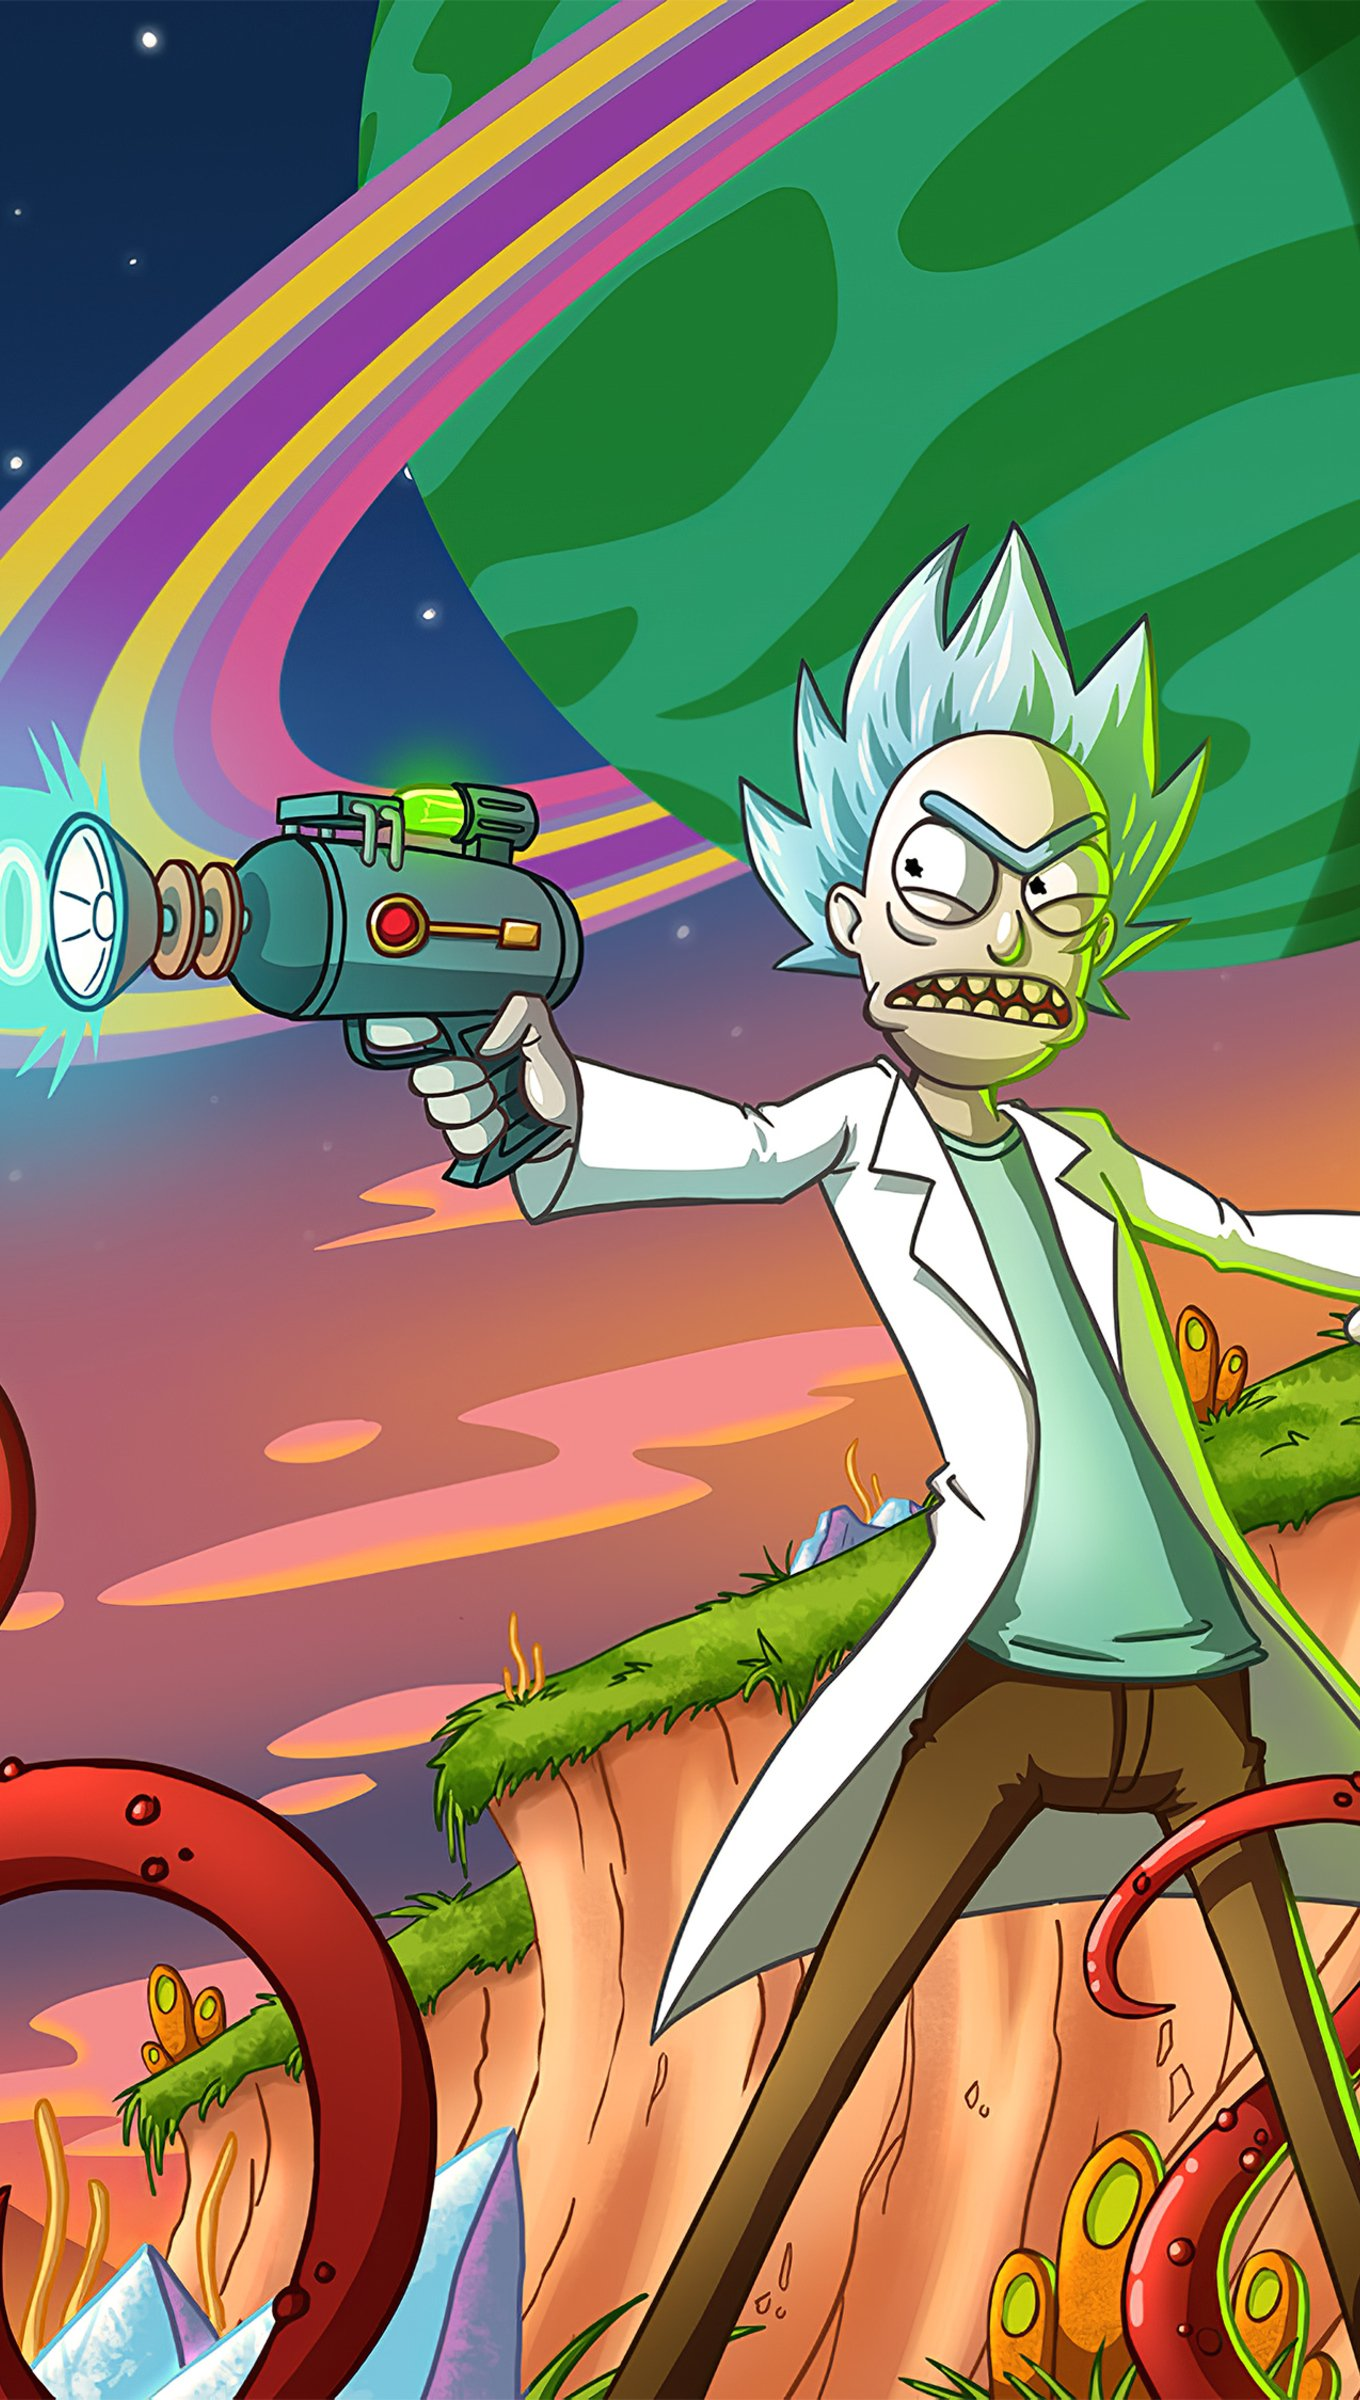 Wallpaper Morty being attacked Vertical